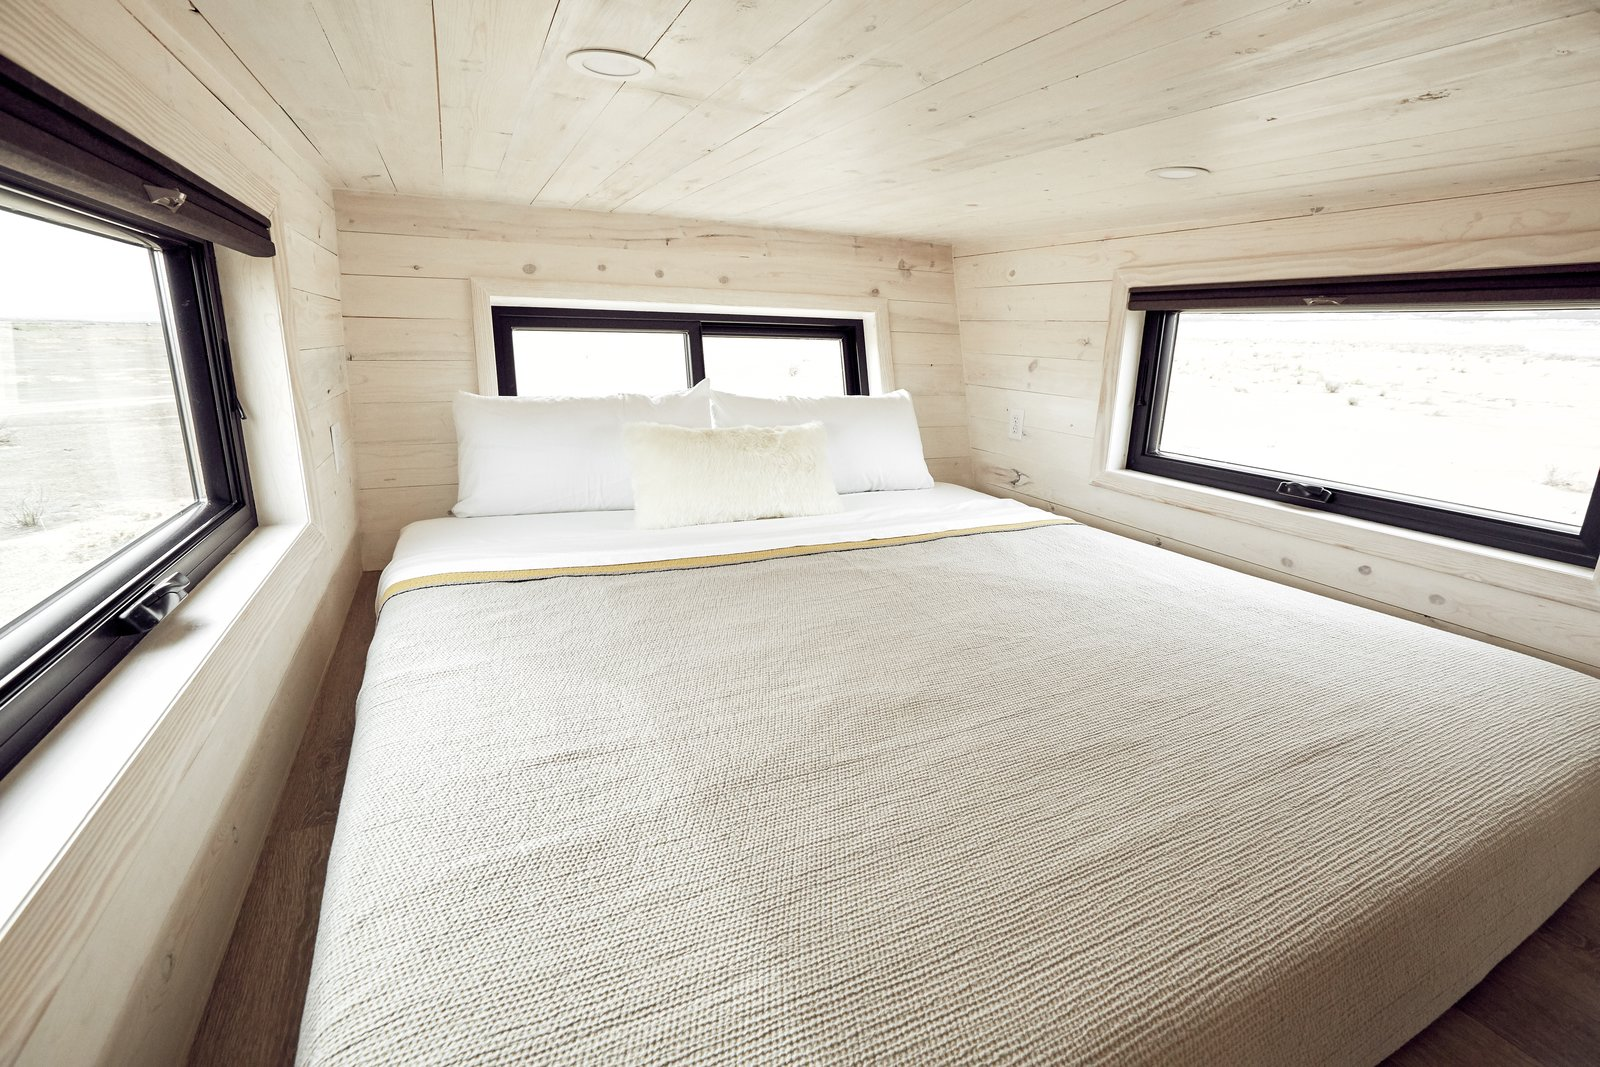 Bedroom, Ceiling Lighting, and Bed The master loft fits a king bed, and features an egress window and two awnings.    Photo 9 of 14 in This Sleek Travel Trailer Is Practically a Cabin on Wheels from Land Ark RV - Drake